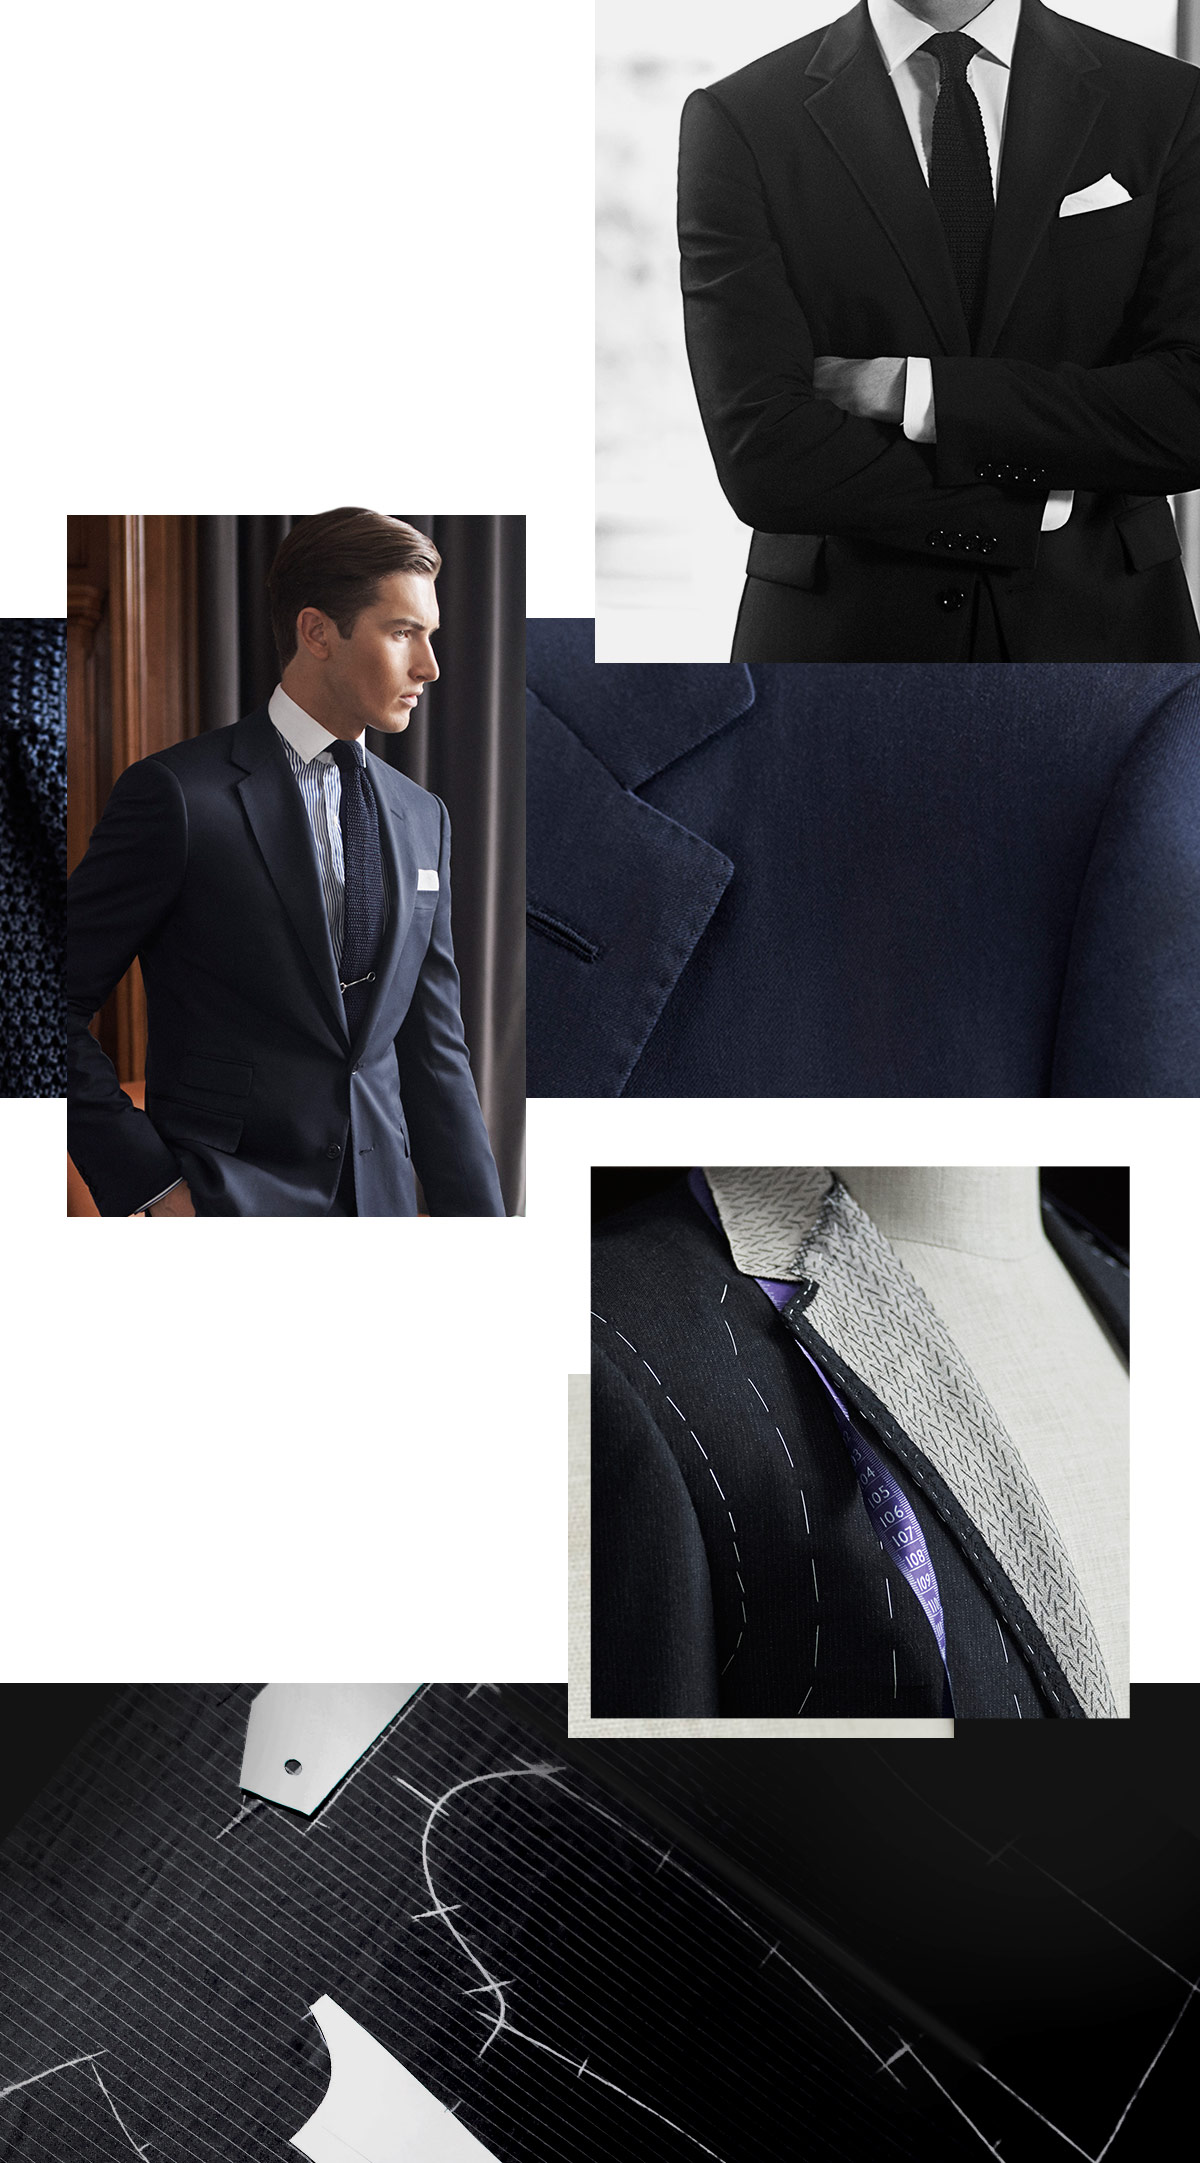 Photographs of various details of the Gregory suit.